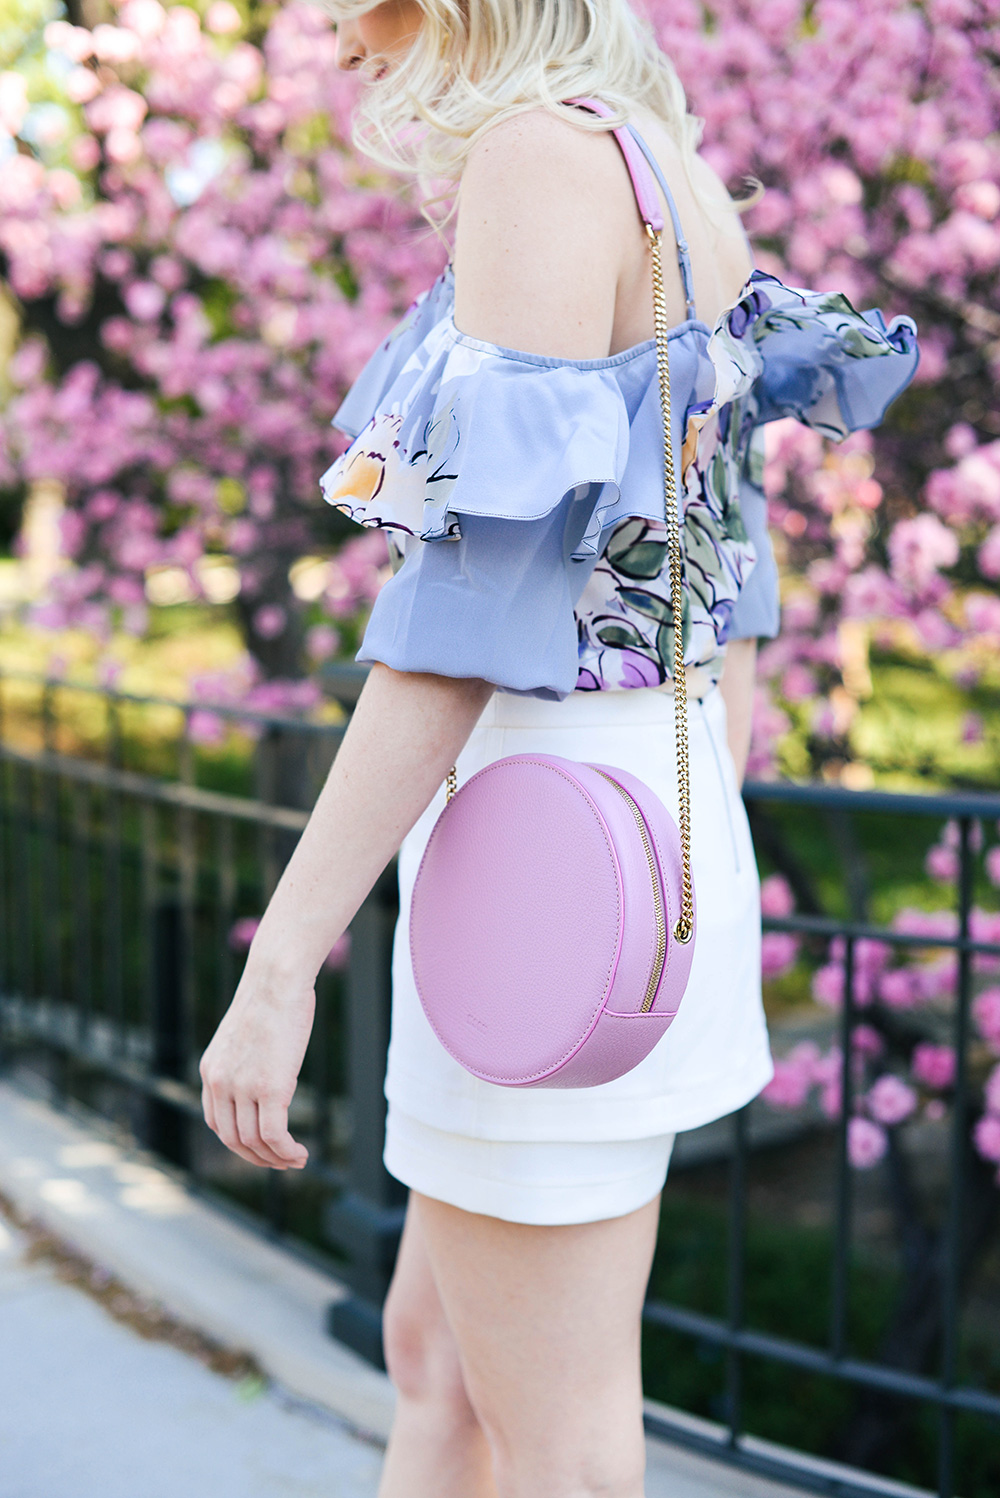 MSGM Round Bag | The Style Scribe